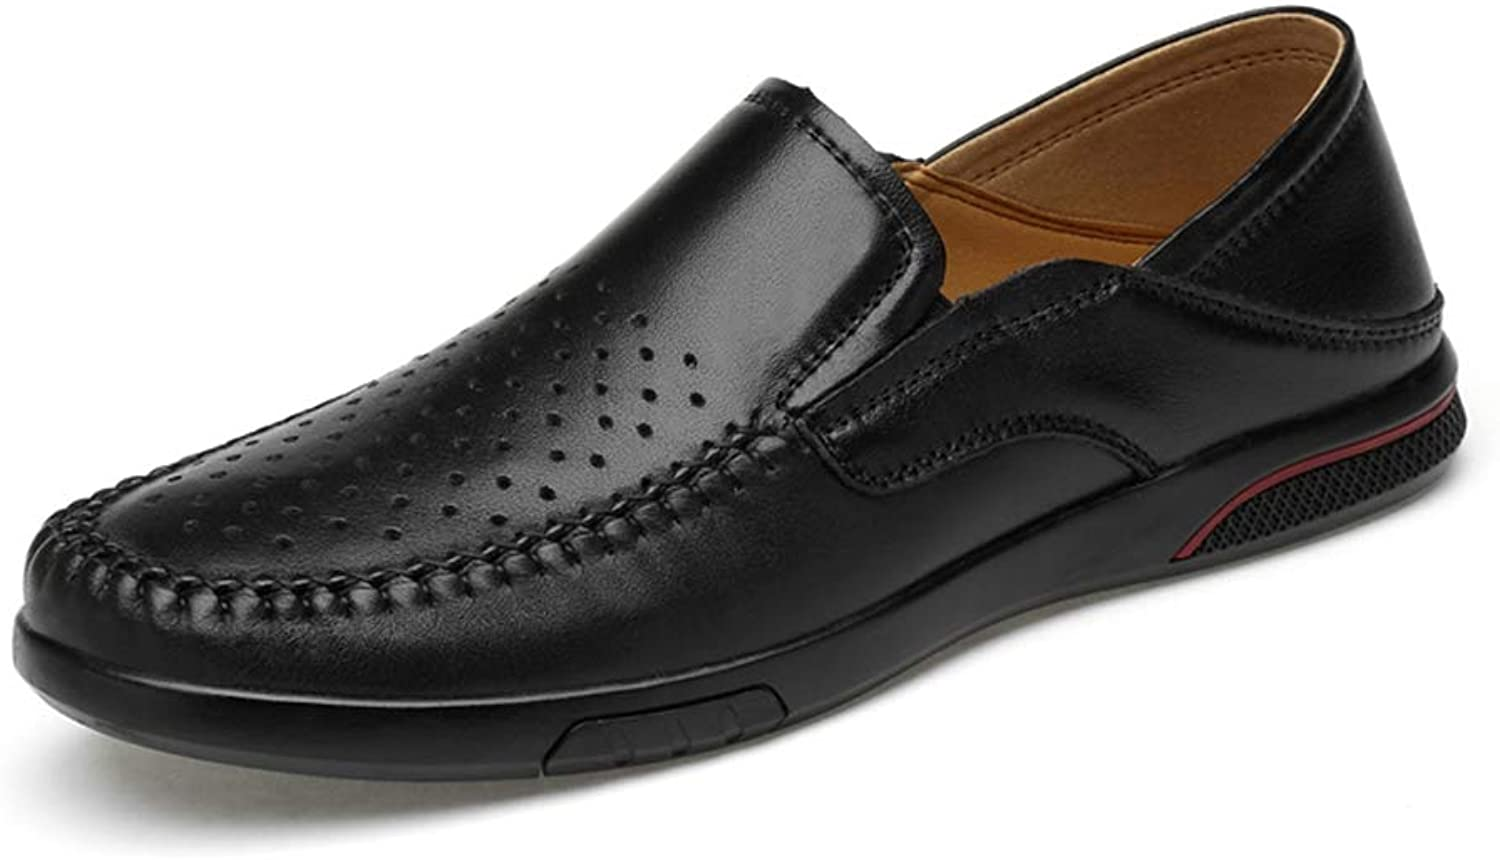 Men's shoes Casual Comfort Hole Lazy shoes Flat Loafers Loafers & Slip-Ons for Work, Leisure,Going Out, Gatherings